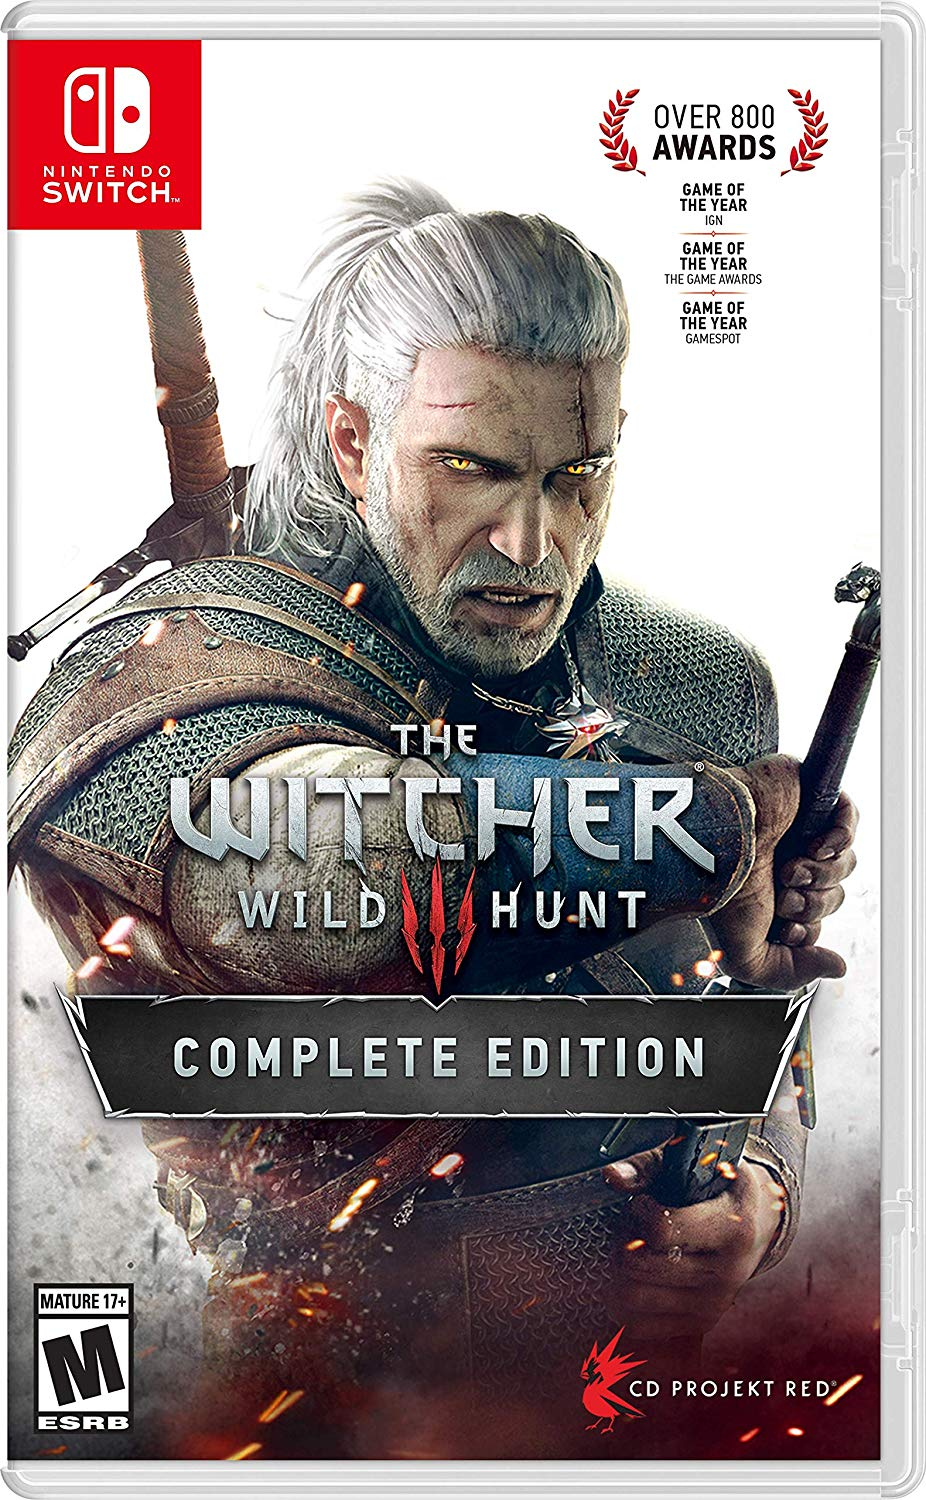 WB The Witcher 3: Wild Hunt Complete Edition - Nintendo Switch